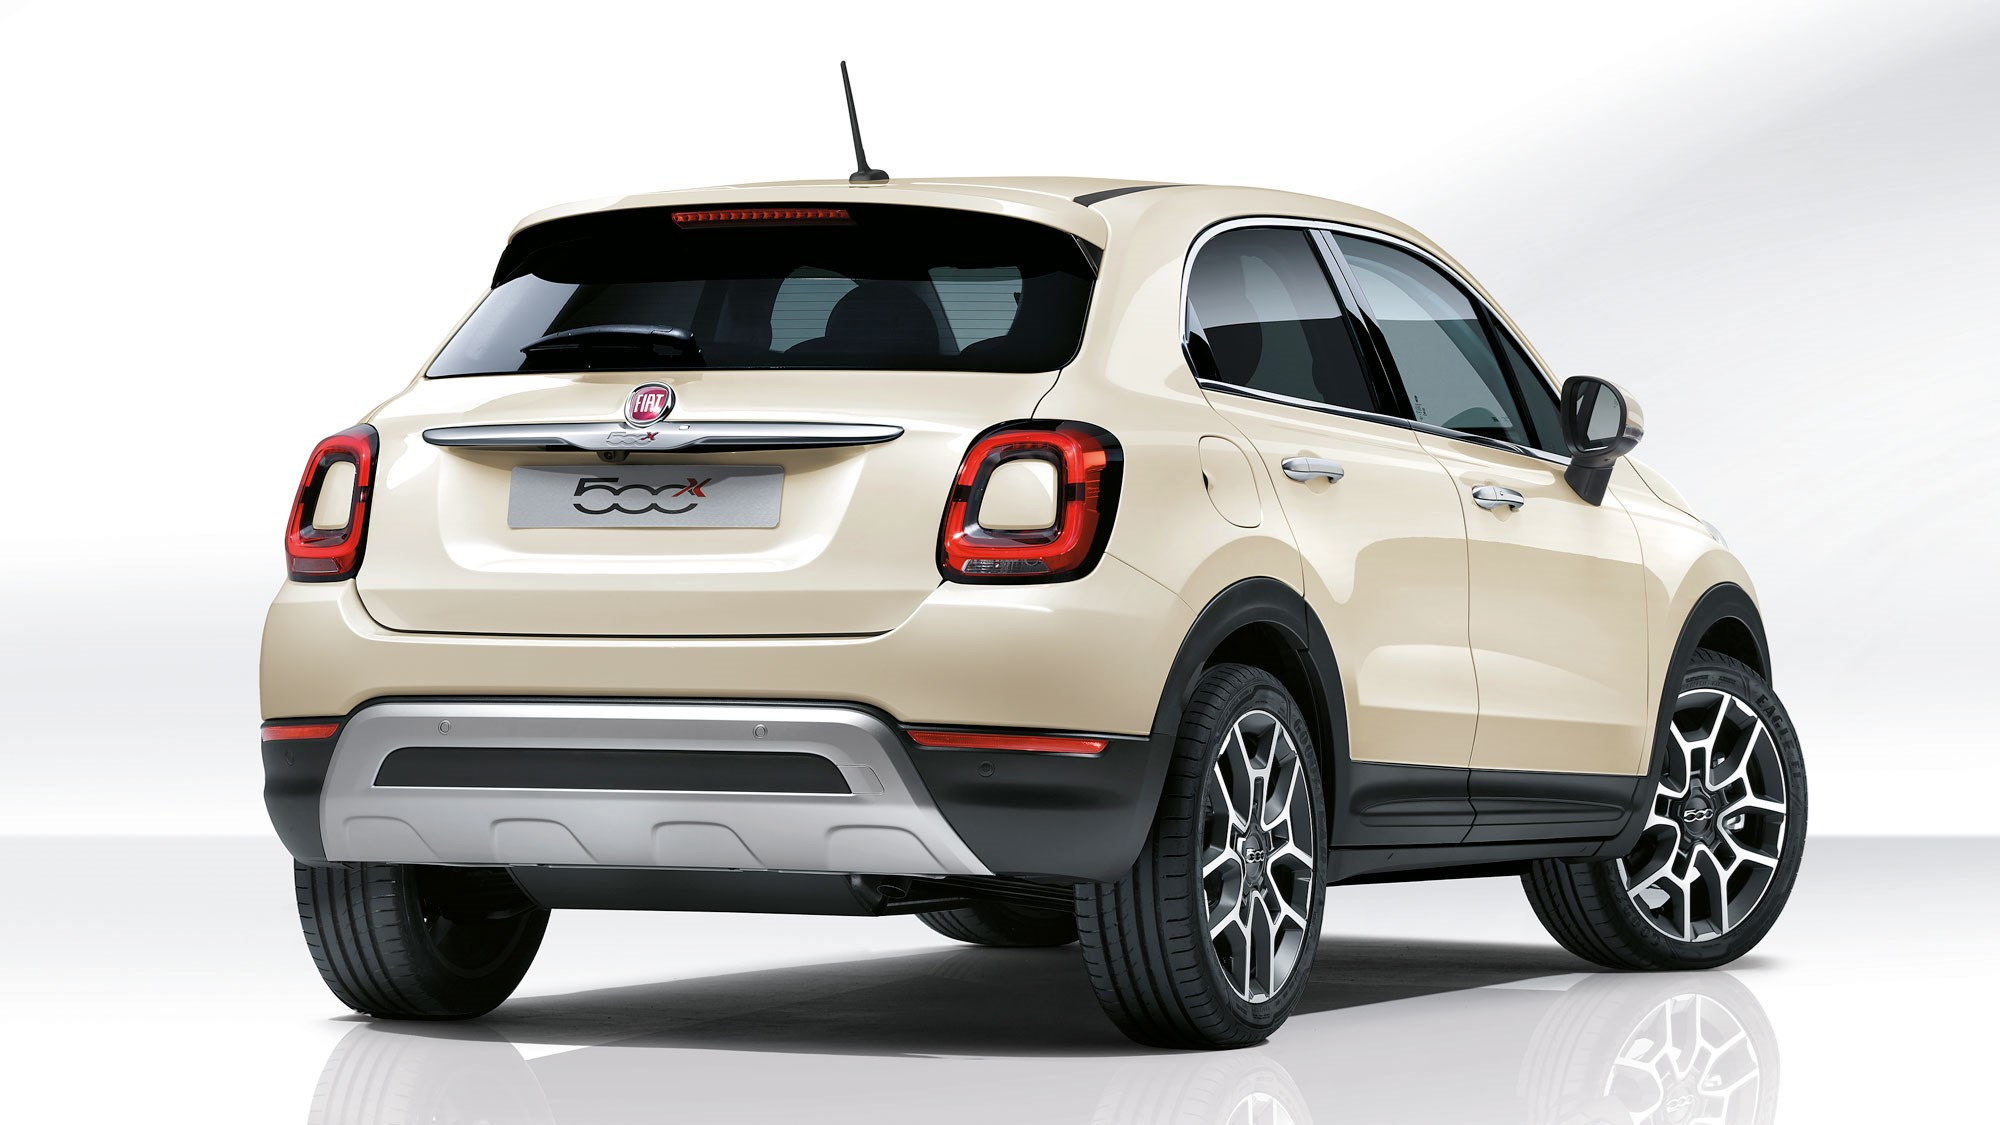 Fiat 500X Crossover >> New Fiat 500X review: the crossover gets a facelift | CAR Magazine